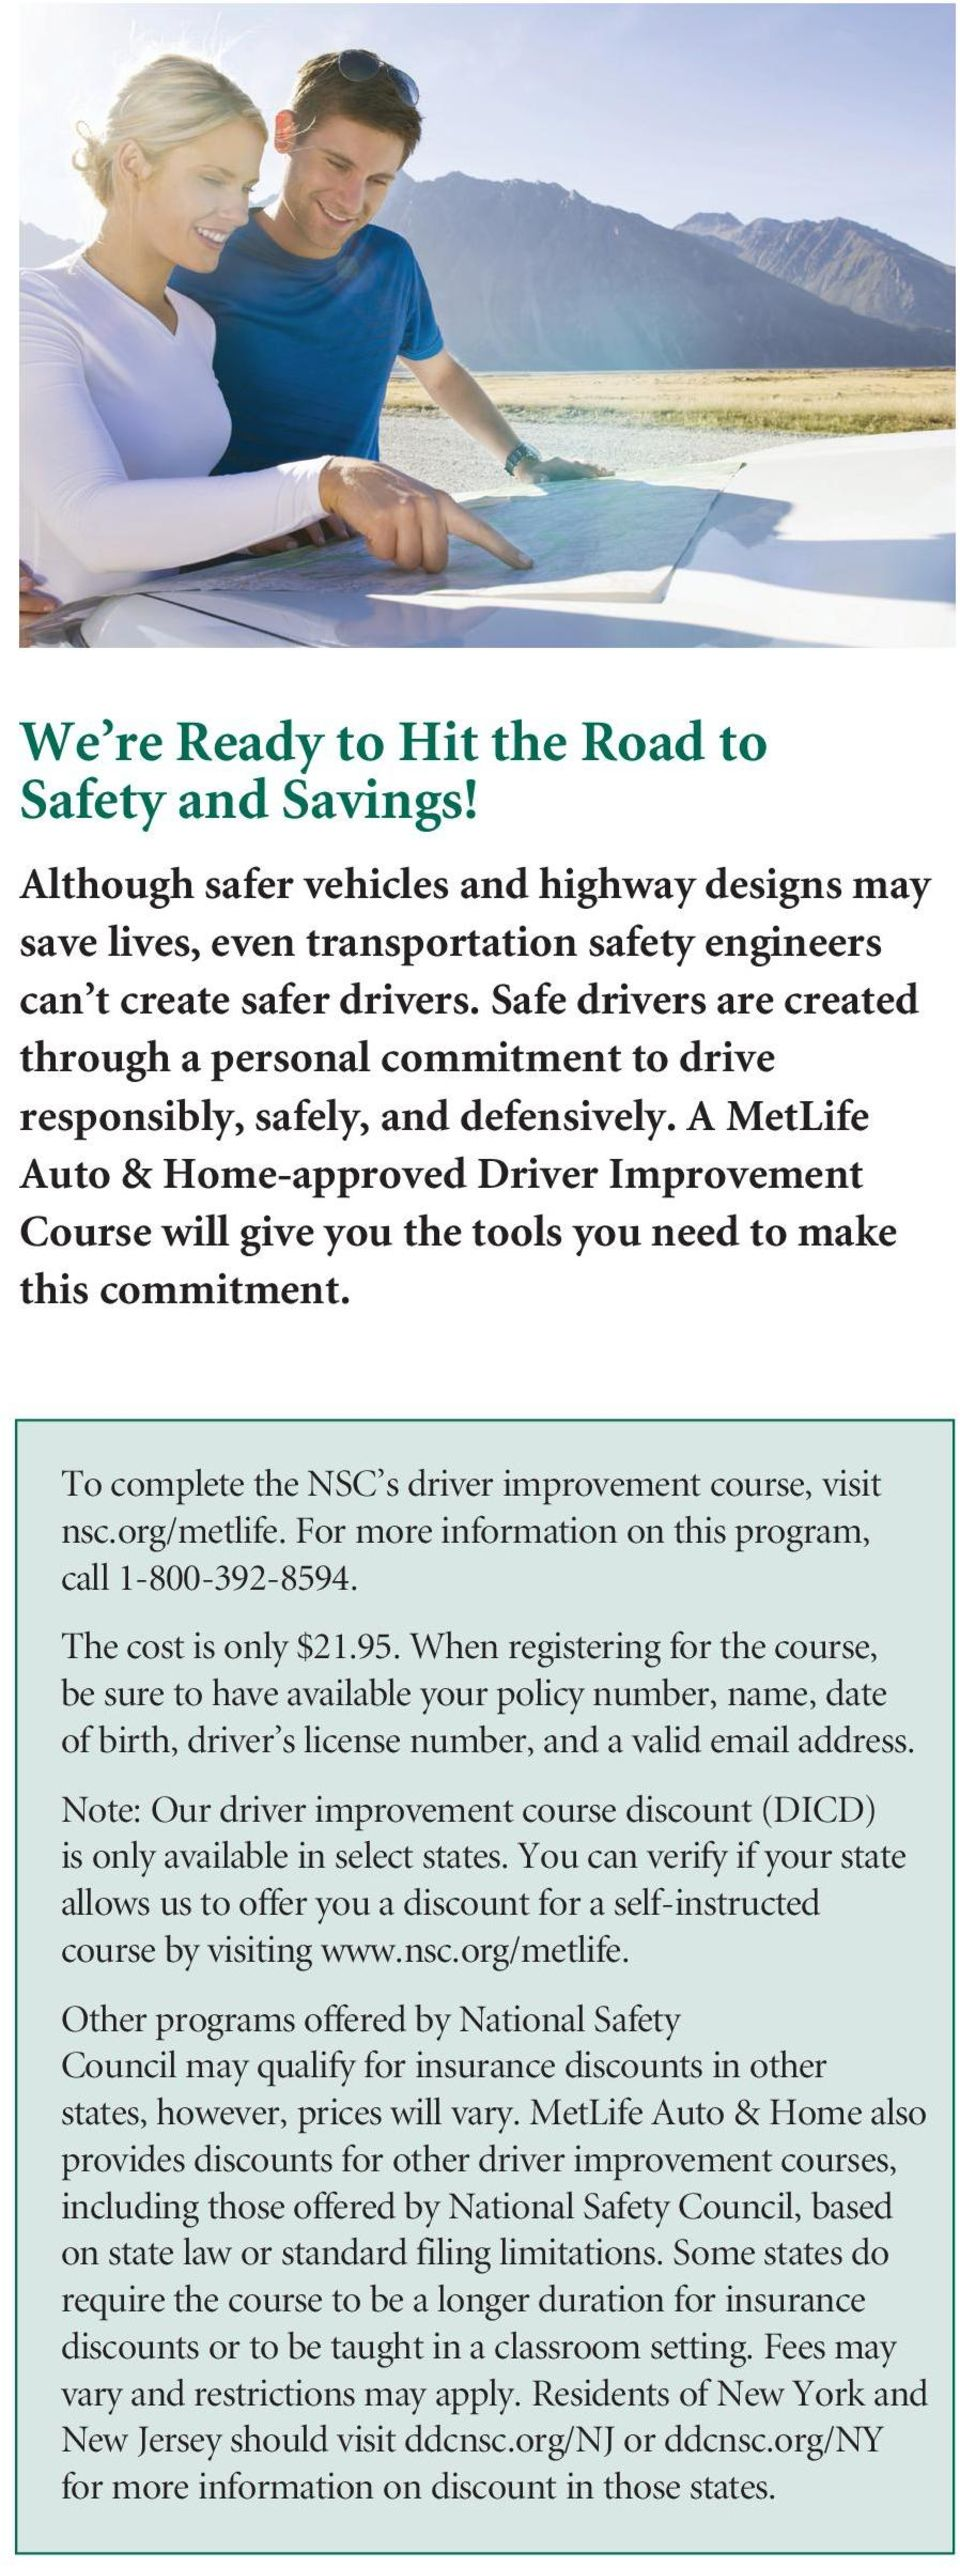 A MetLife Auto & Home-approved Driver Improvement Course will give you the tools you need to make this commitment. To complete the NSC s driver improvement course, visit nsc.org/metlife.